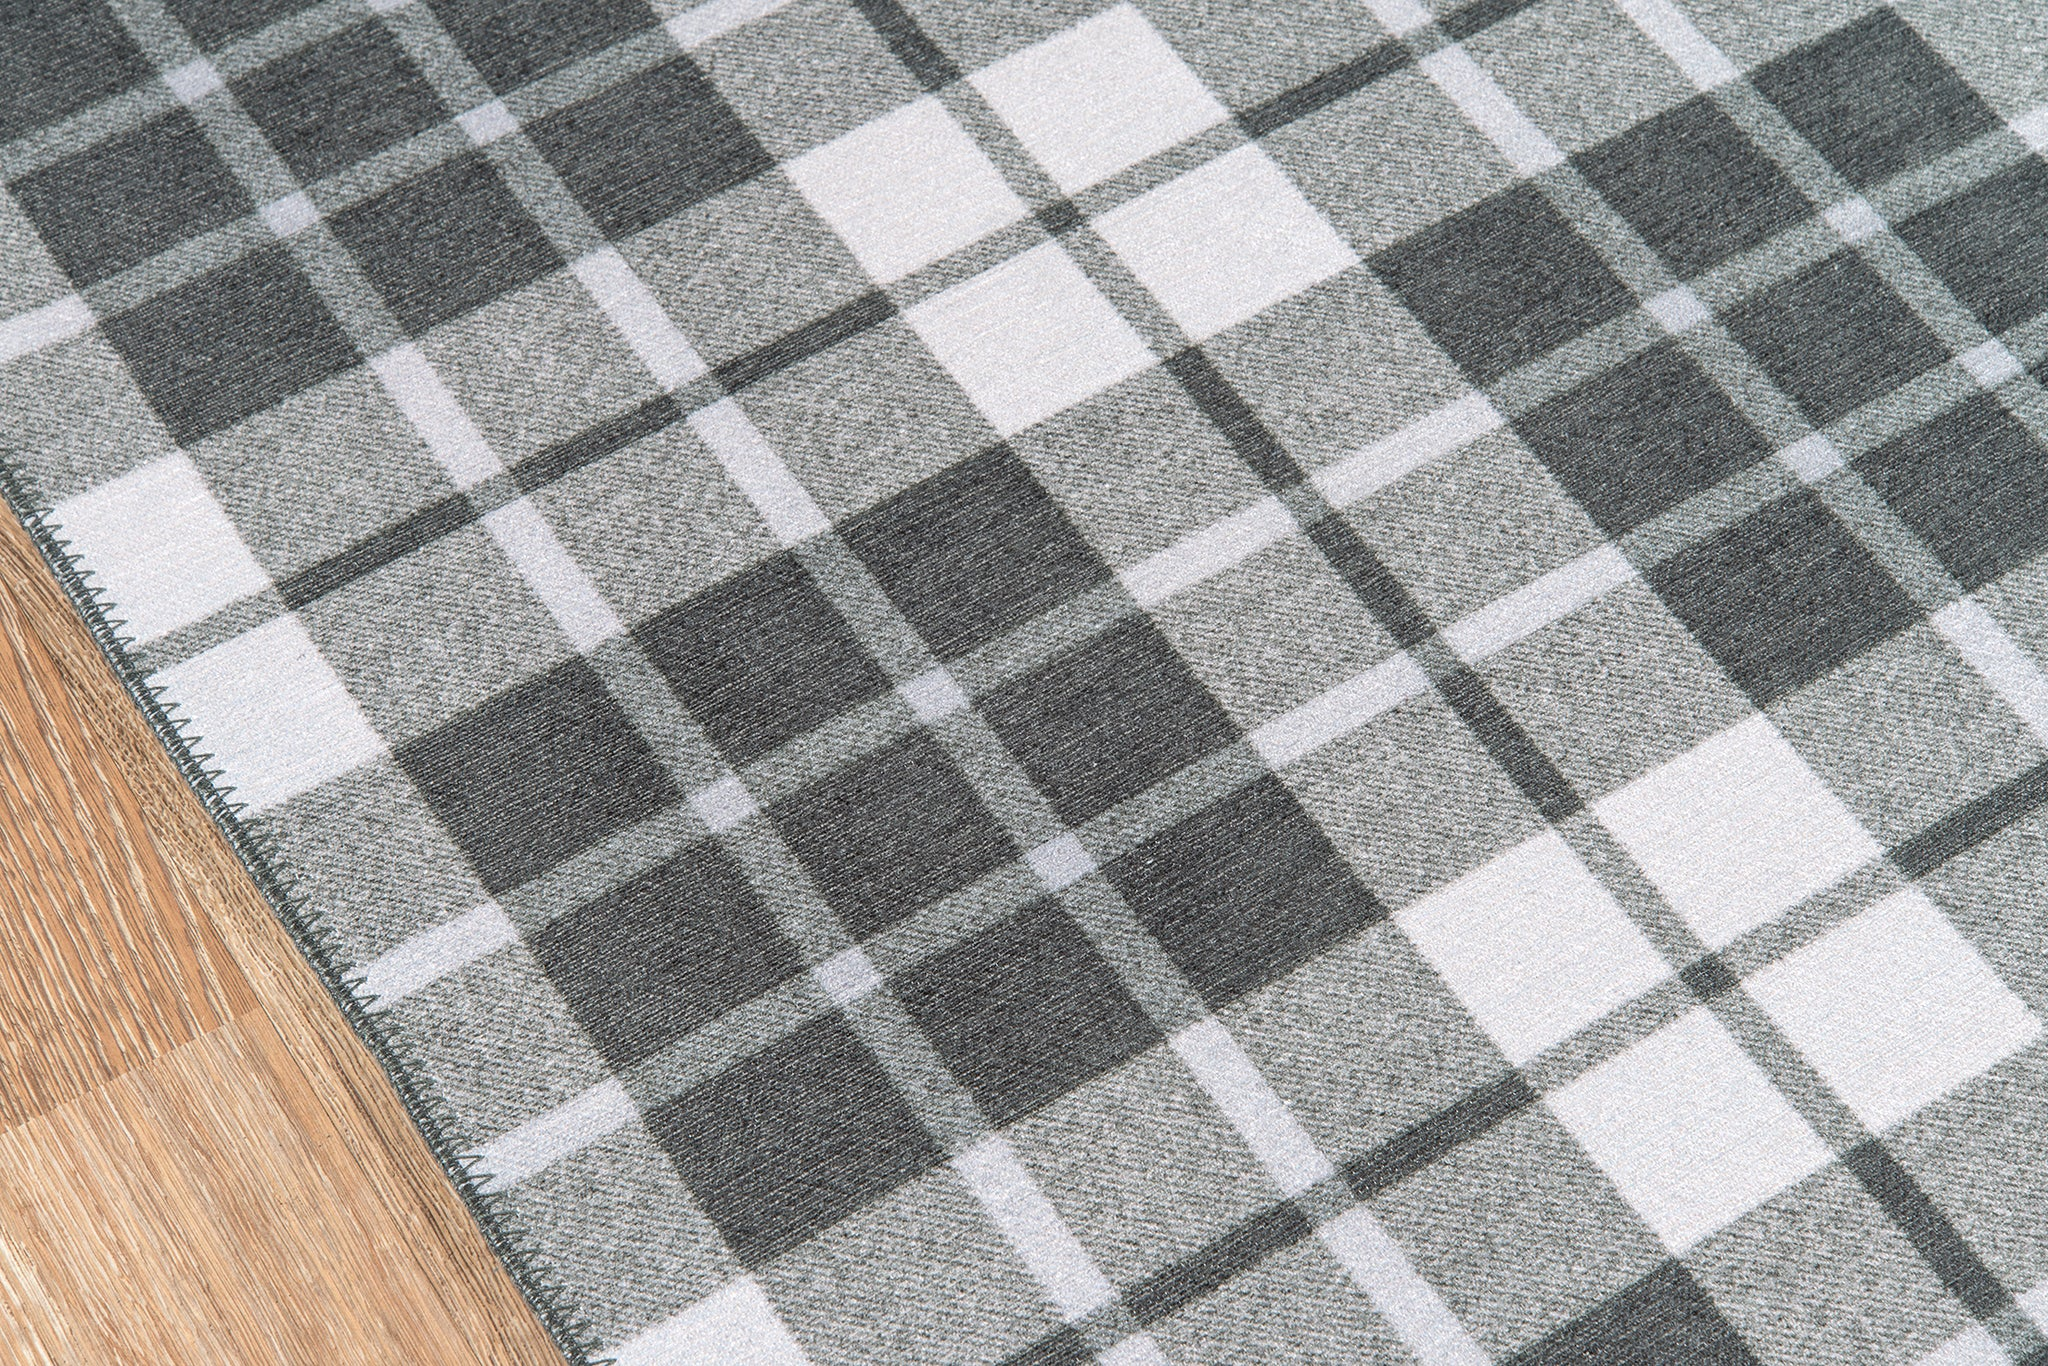 Gray Plaid Tartan Area Rug - Novogratz - District